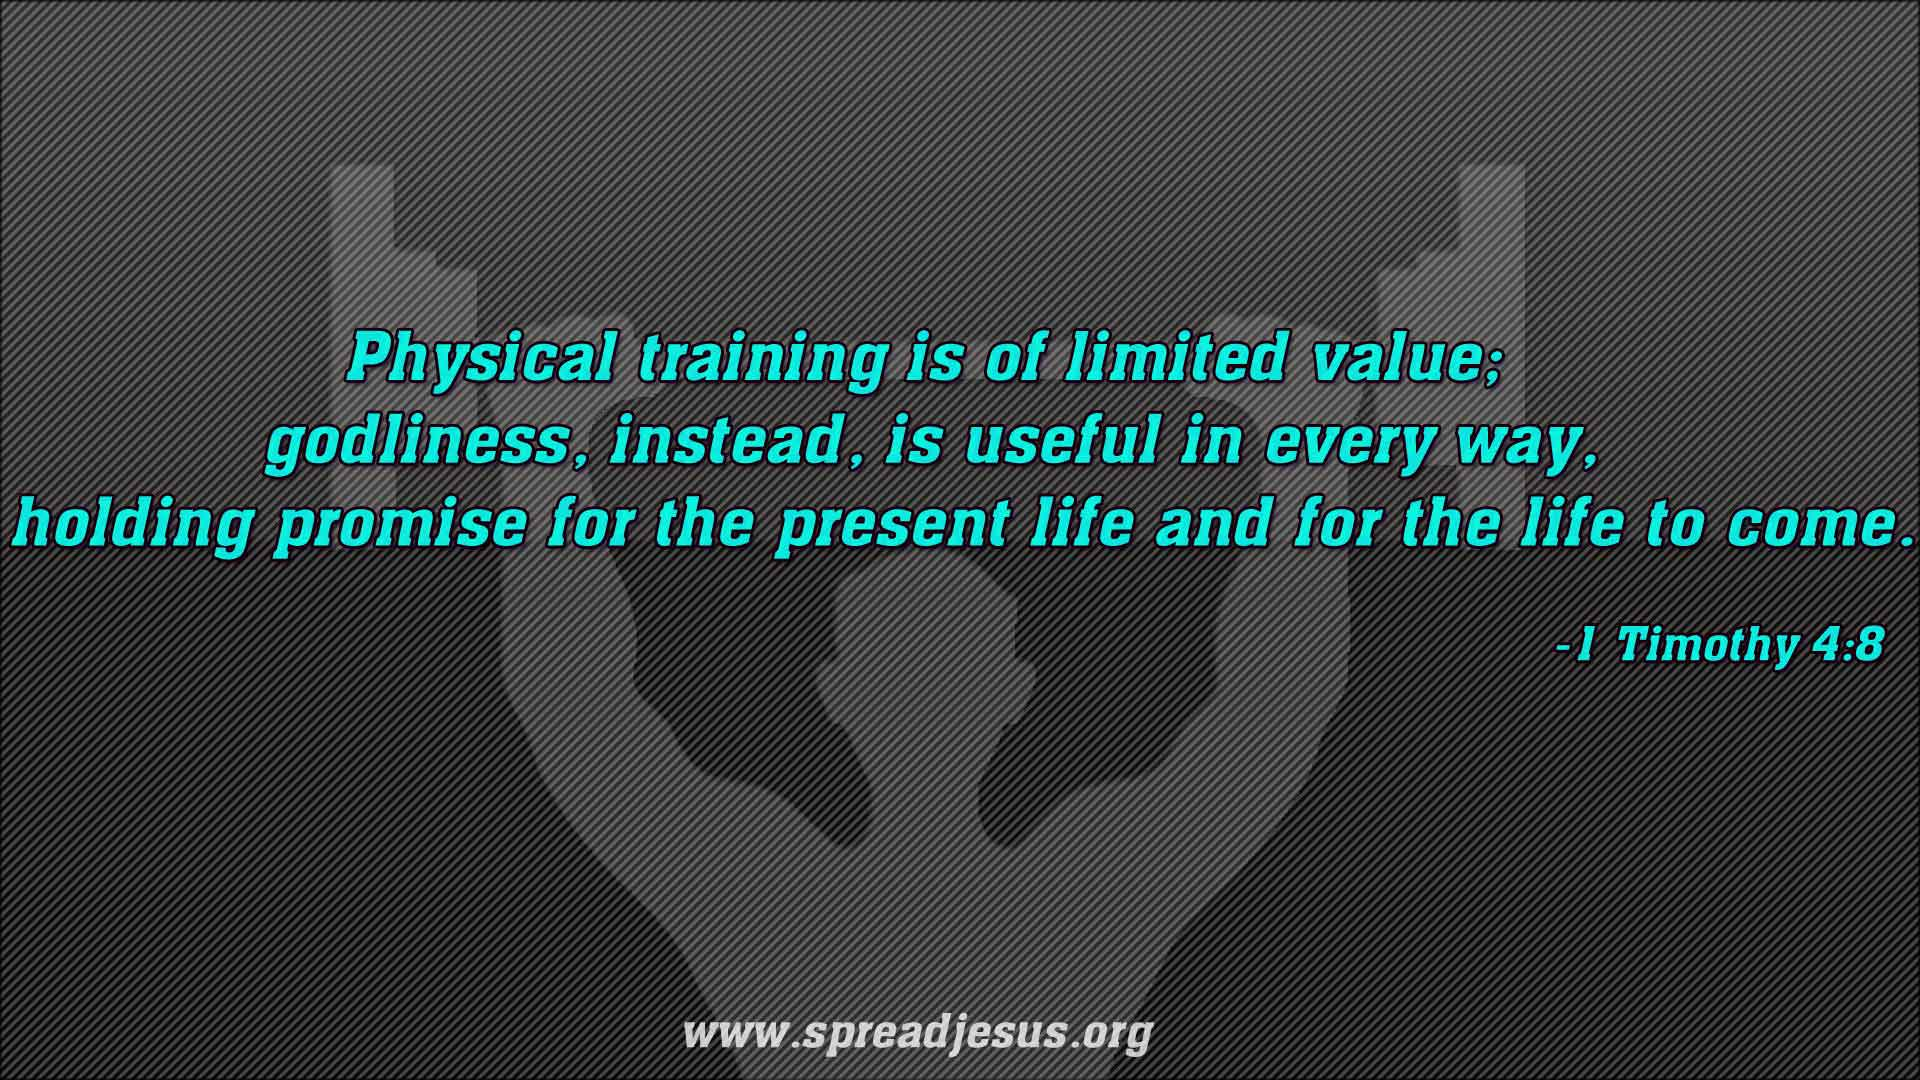 Physical training is of limited value